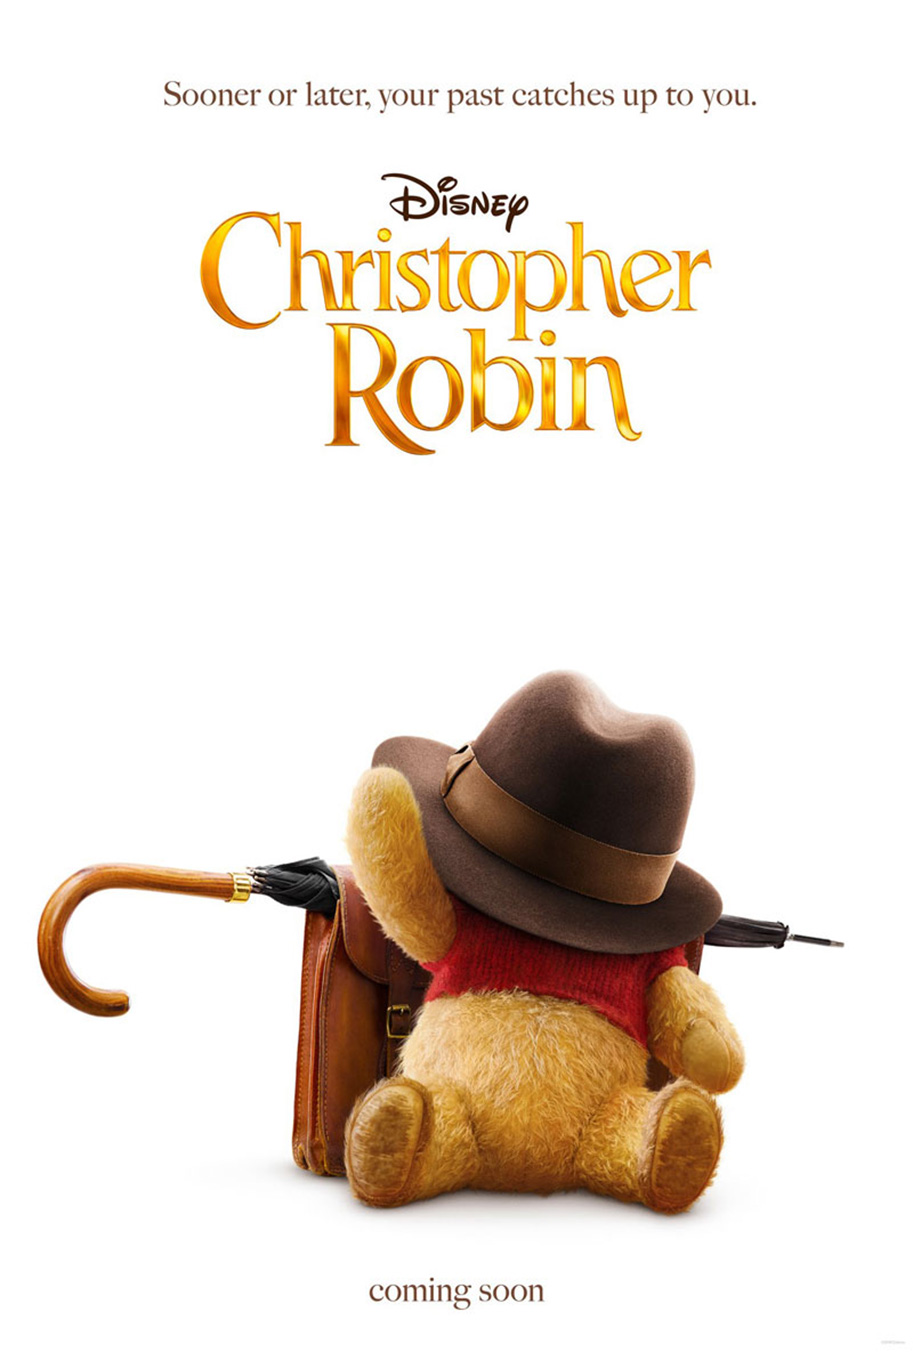 Christopher Robin @ Palace Theatre